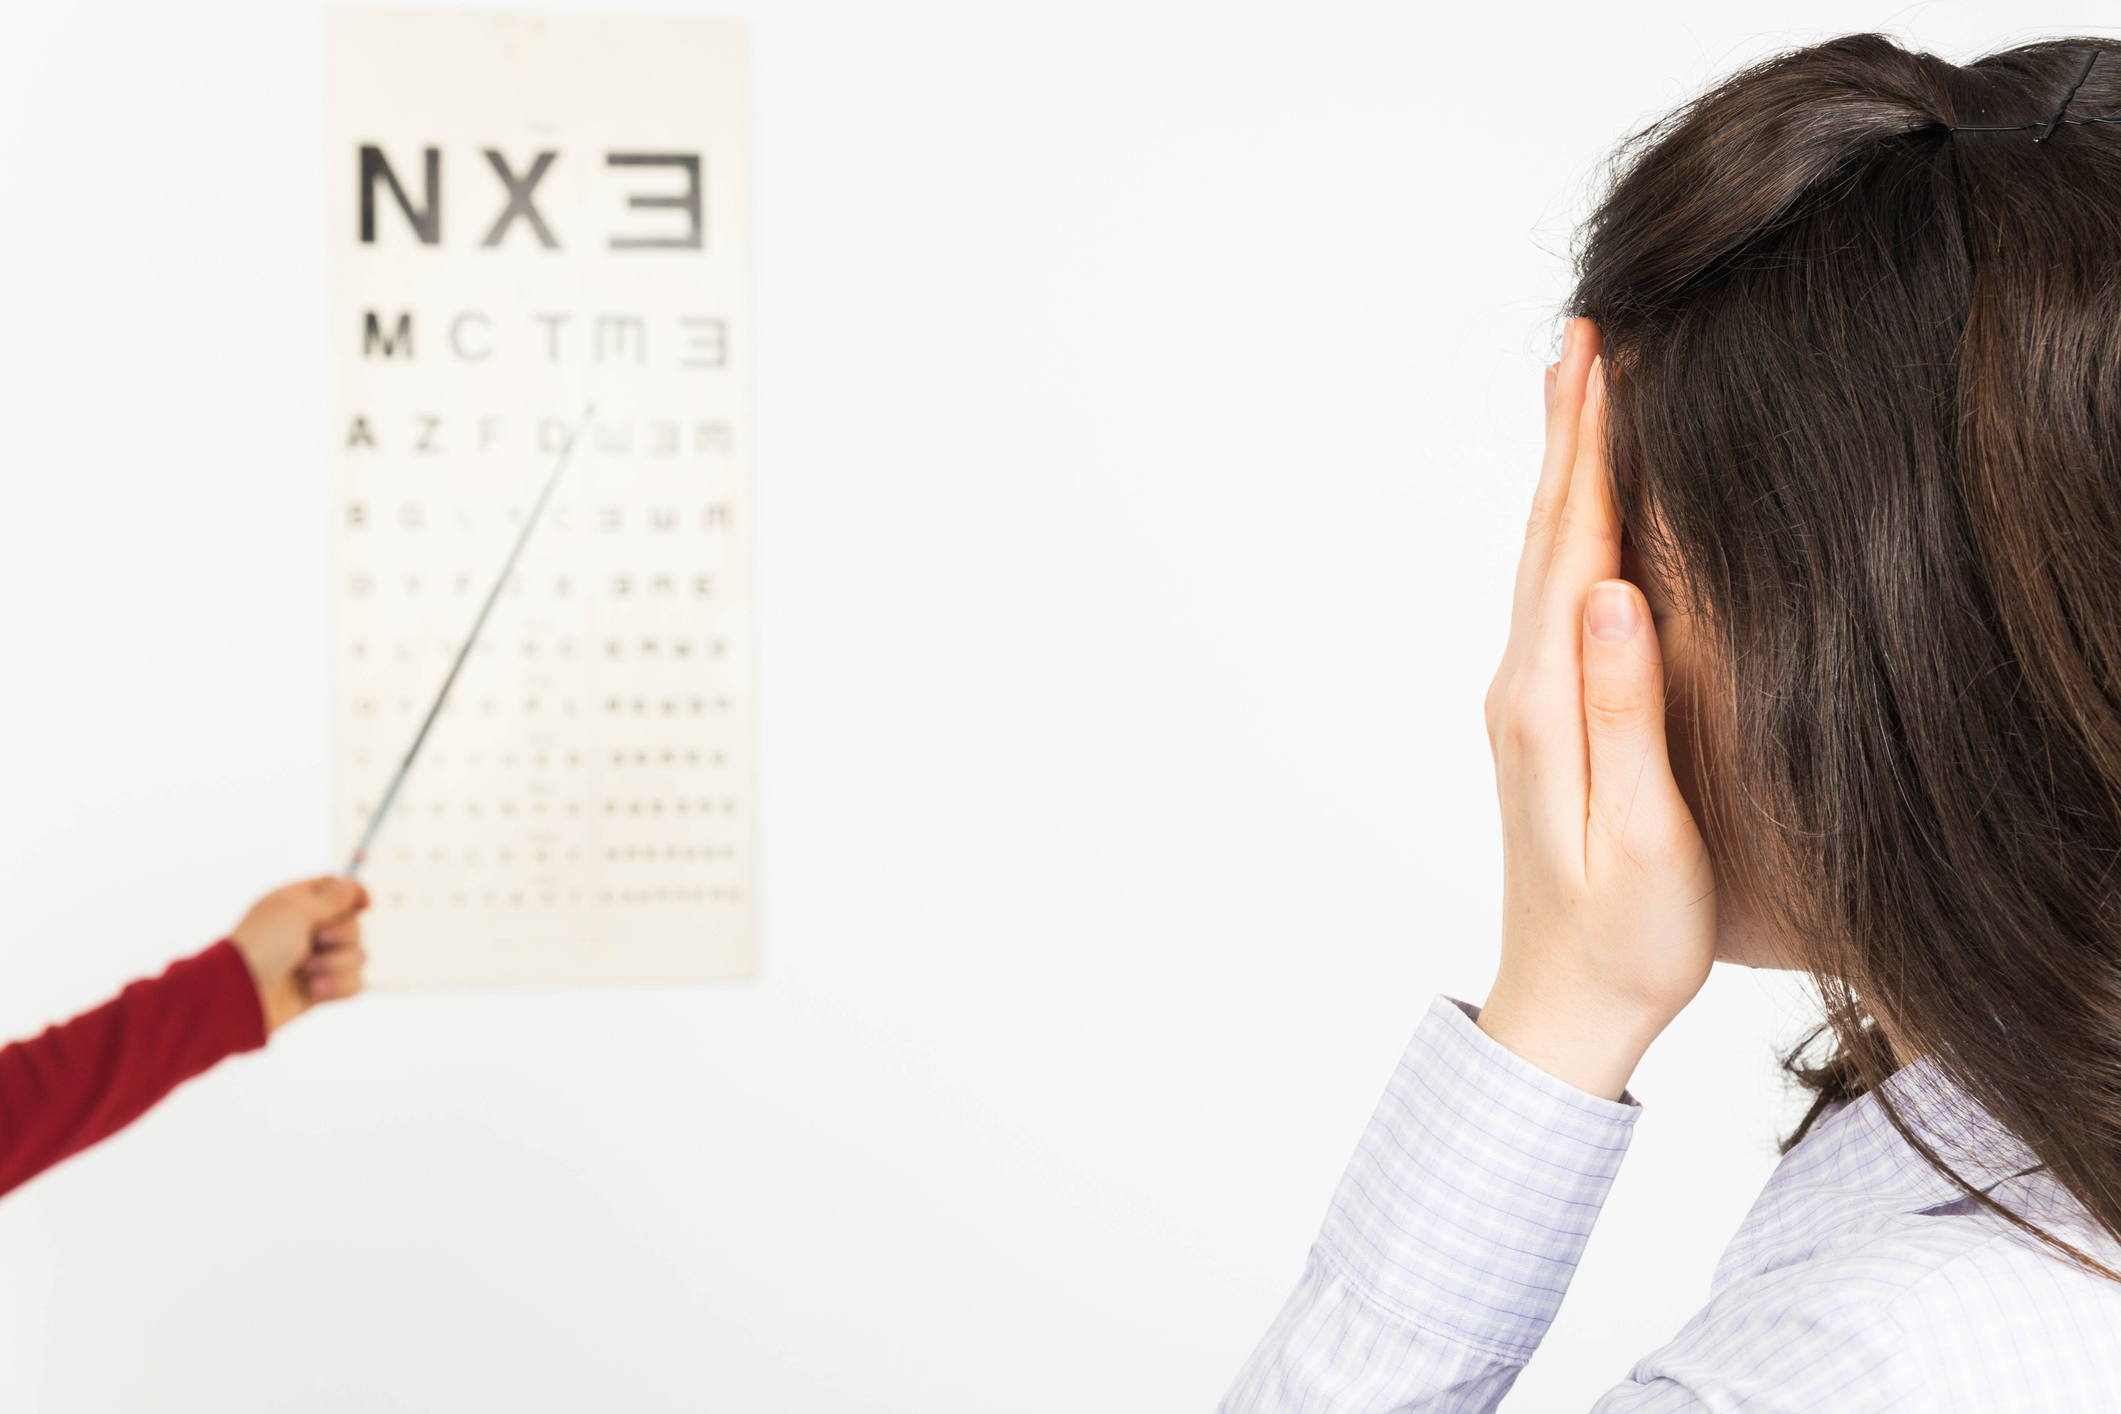 amsler grid test to detect damaged caused by macular degeneration or other eye disease